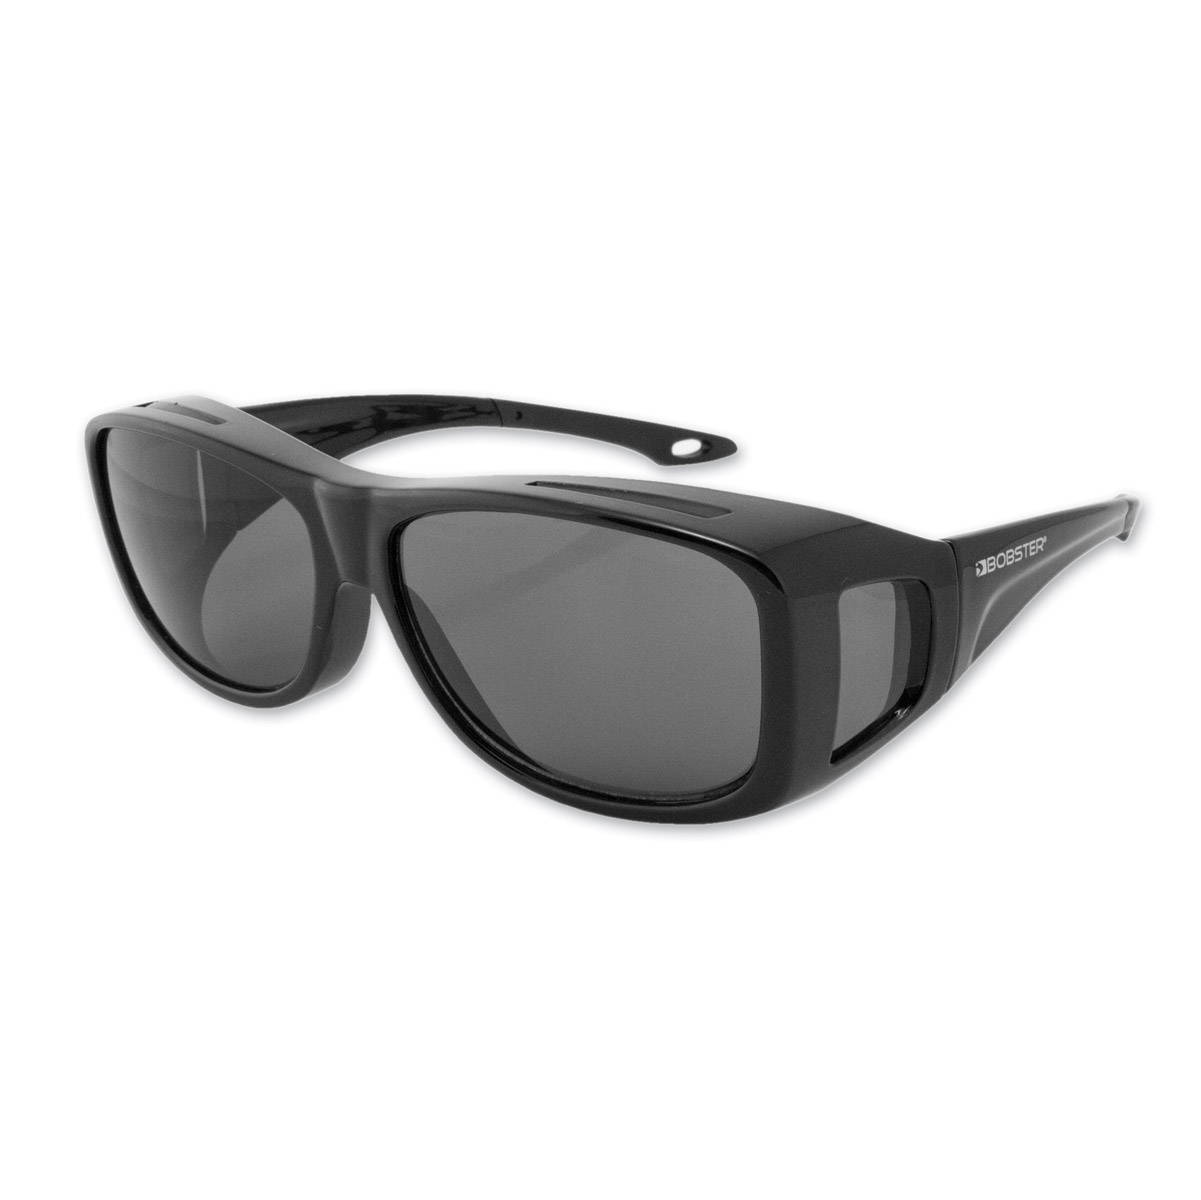 992d0c0fdbc Bobster Condor 2 Large Black Frame Sunglasses with Smoked Lenses ...